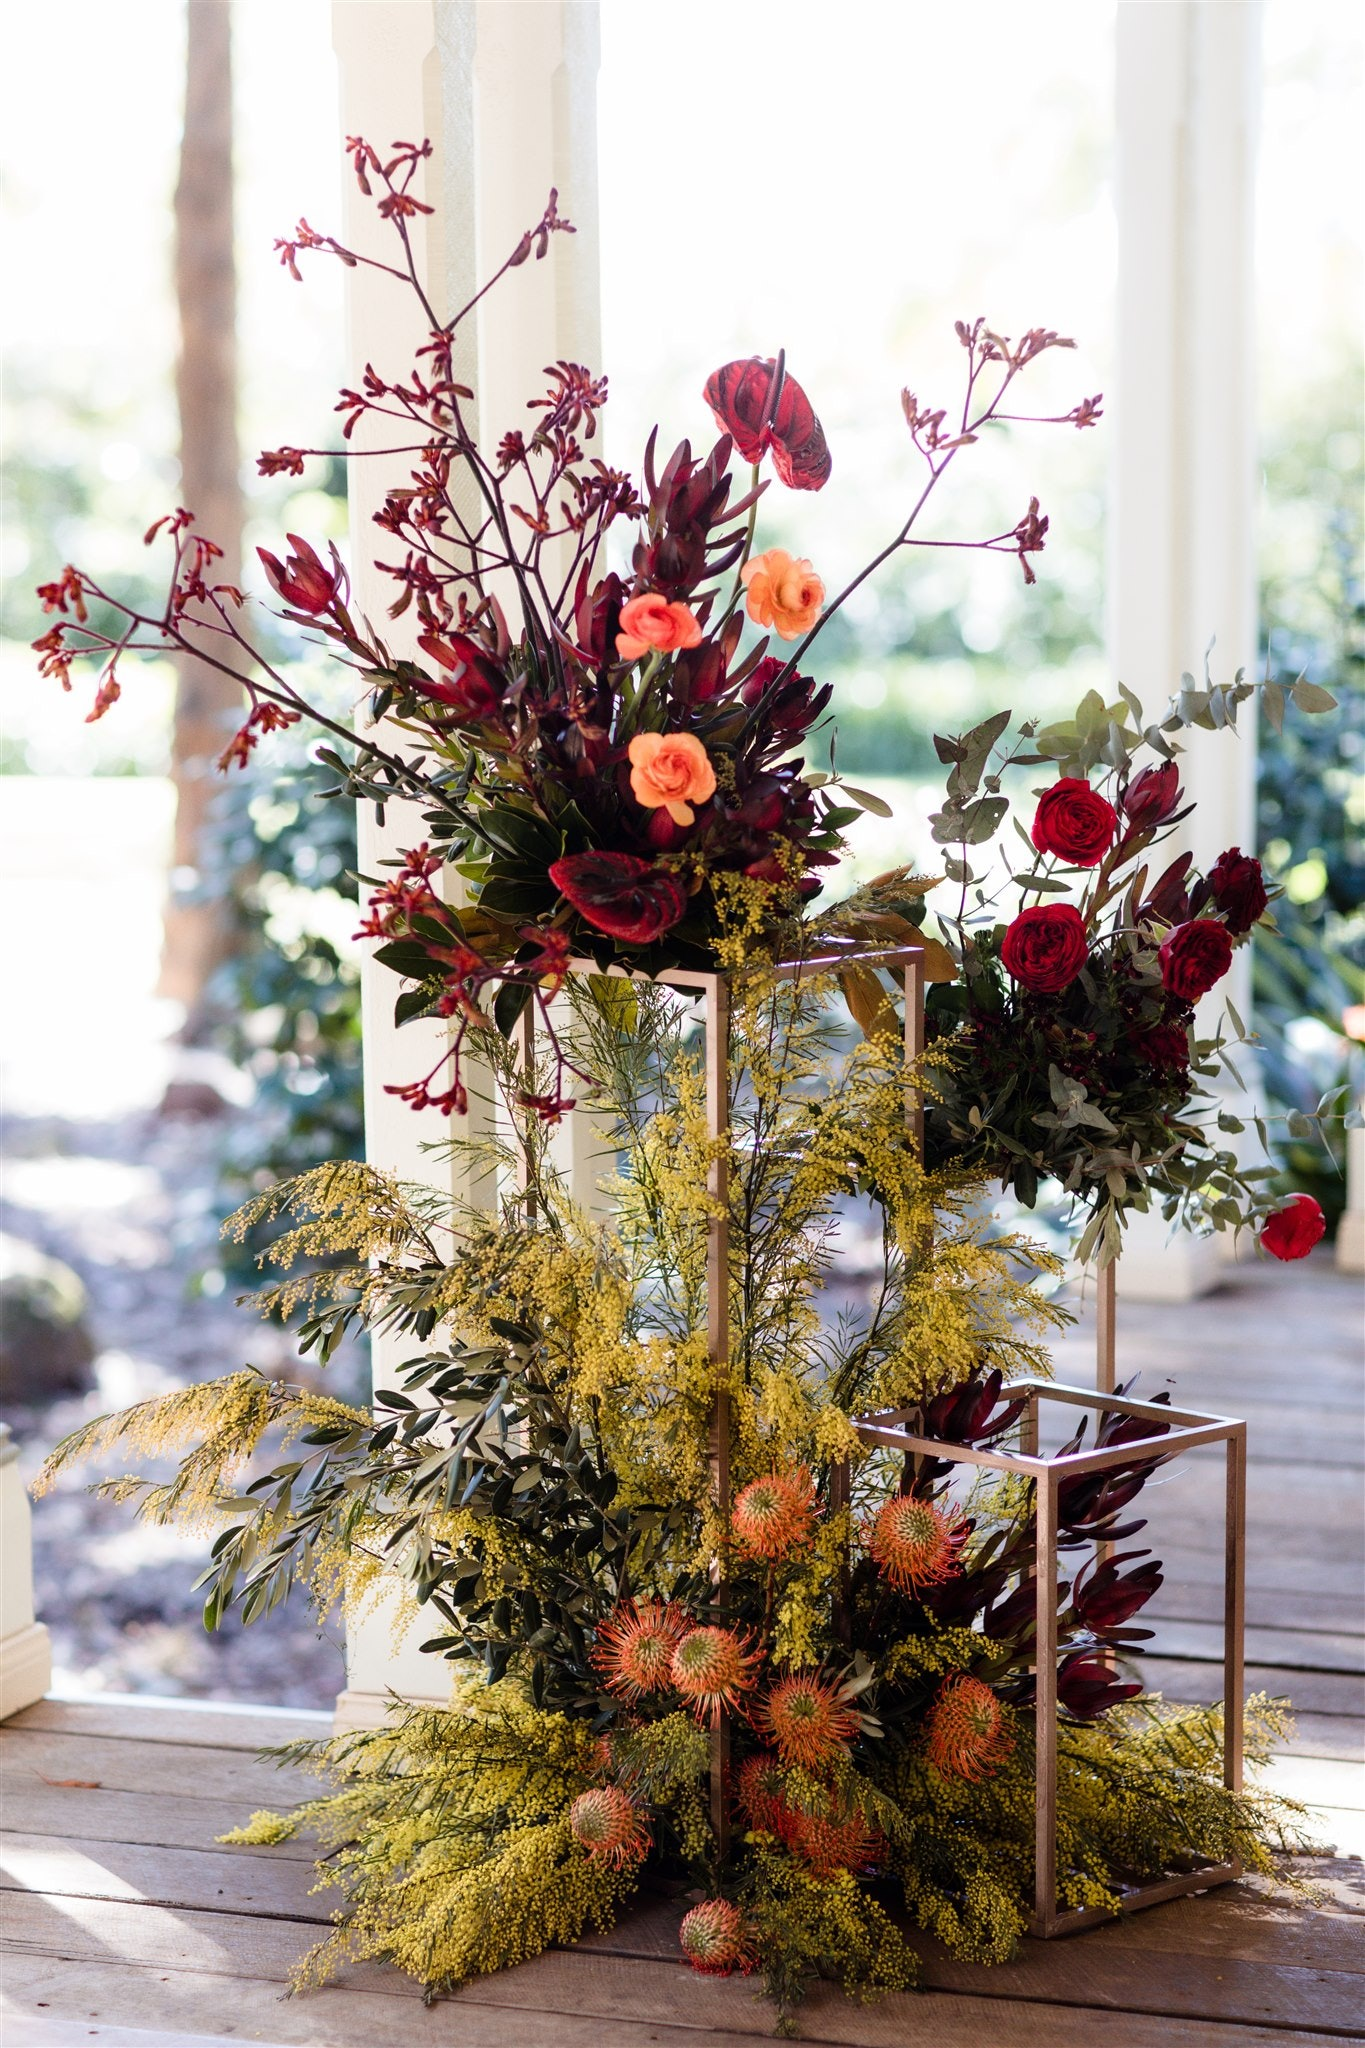 Floral arrangement made into an arbour